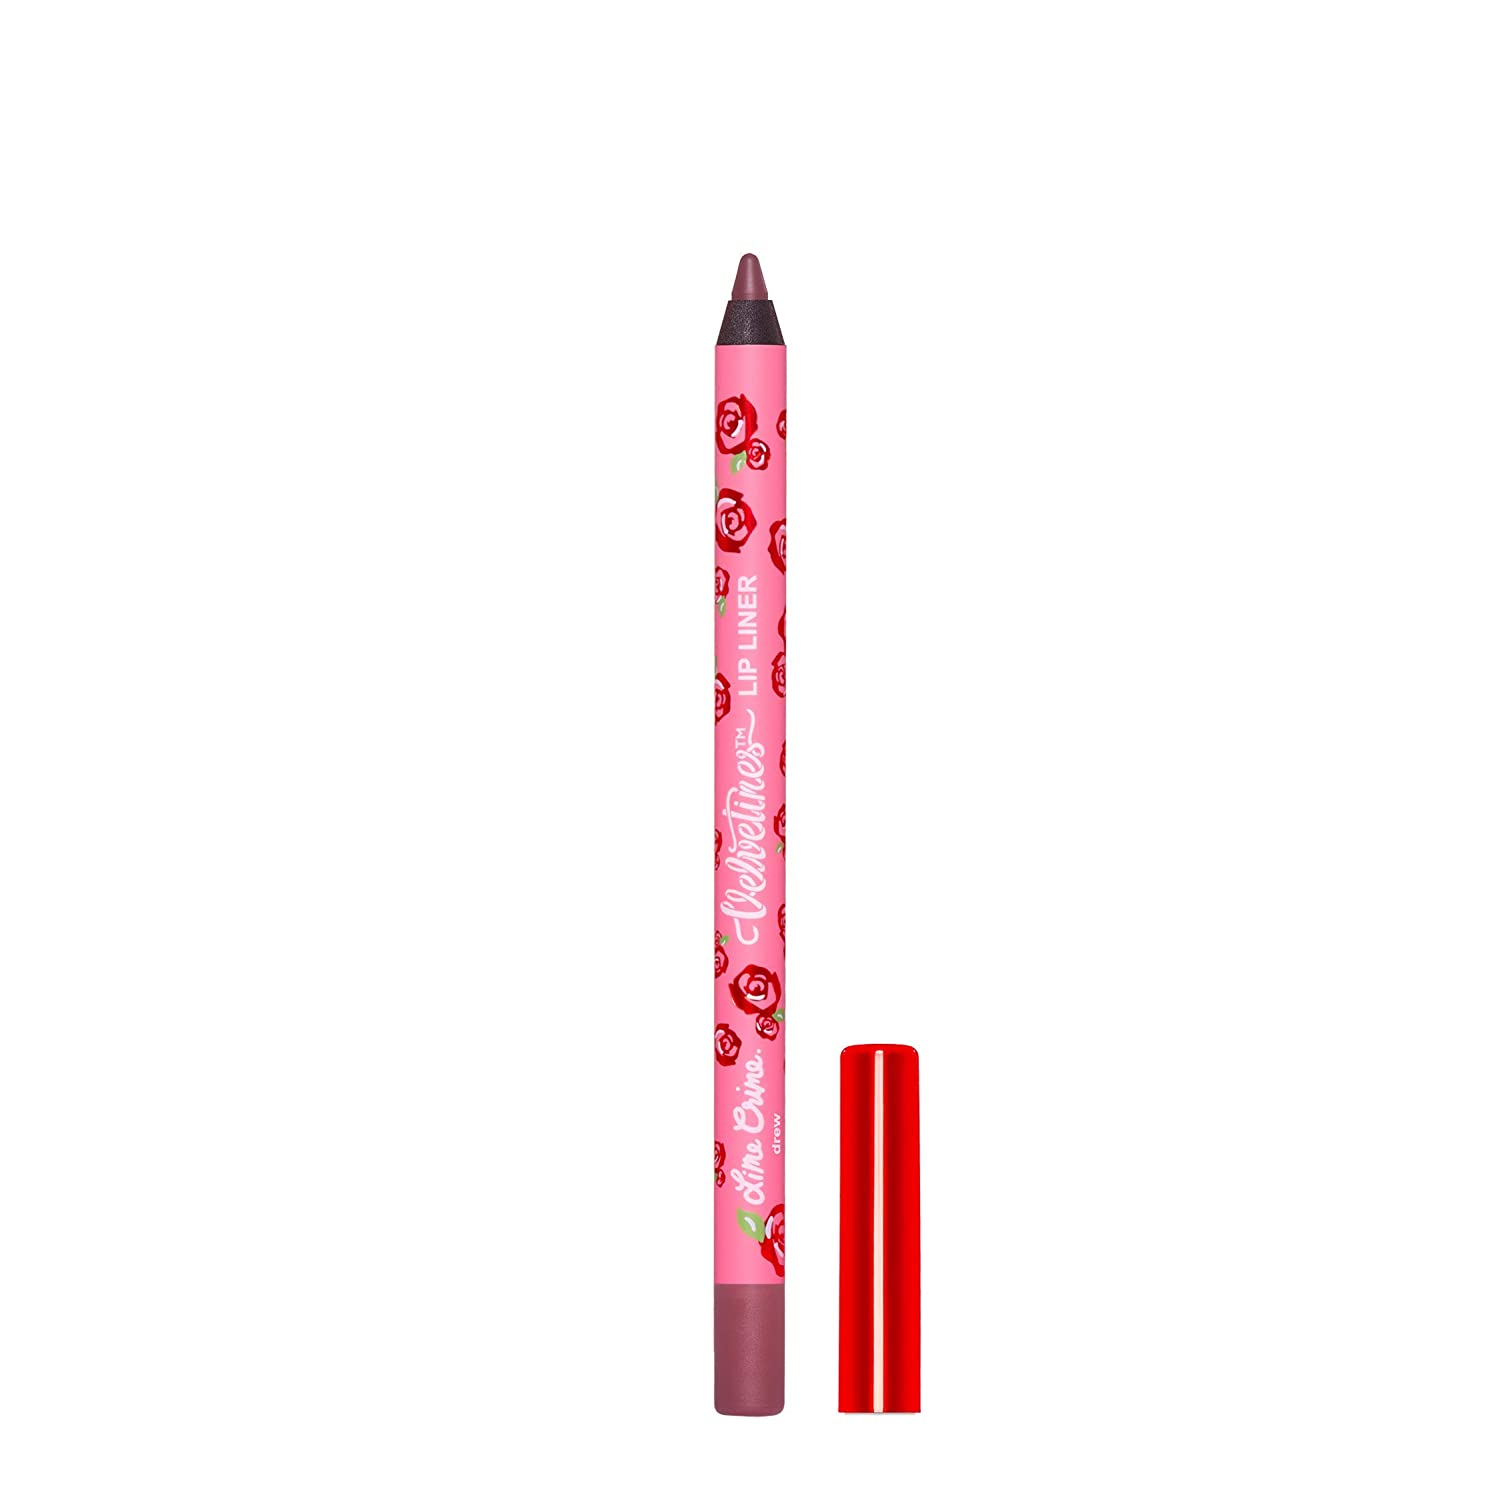 Lime Crime Velvetine Lip Liner (Angel). Long Lasting Apricot Nude Matte Lip Lining Pencil (0.042oz / 1.20 g)